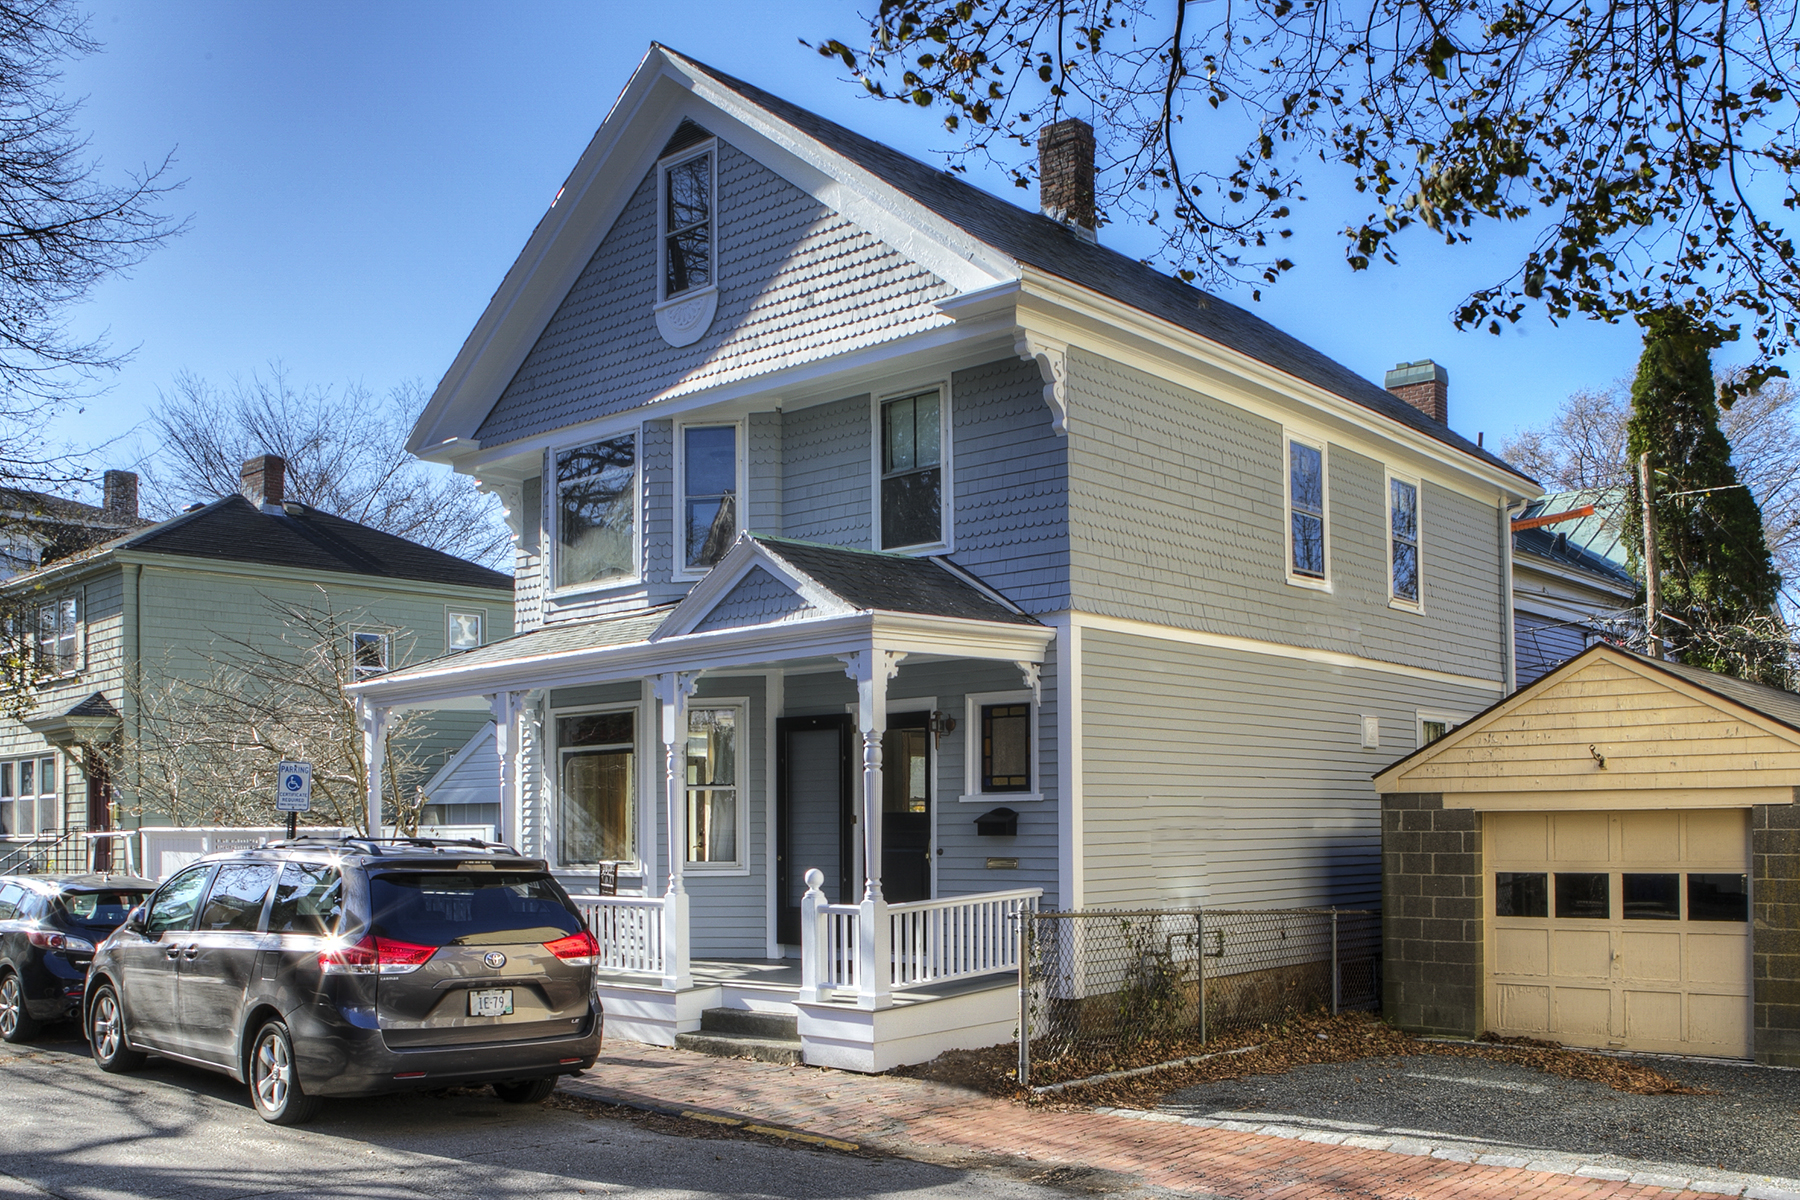 Additional photo for property listing at Henry J. Jones House 21 Division Street Newport, Rhode Island 02840 United States